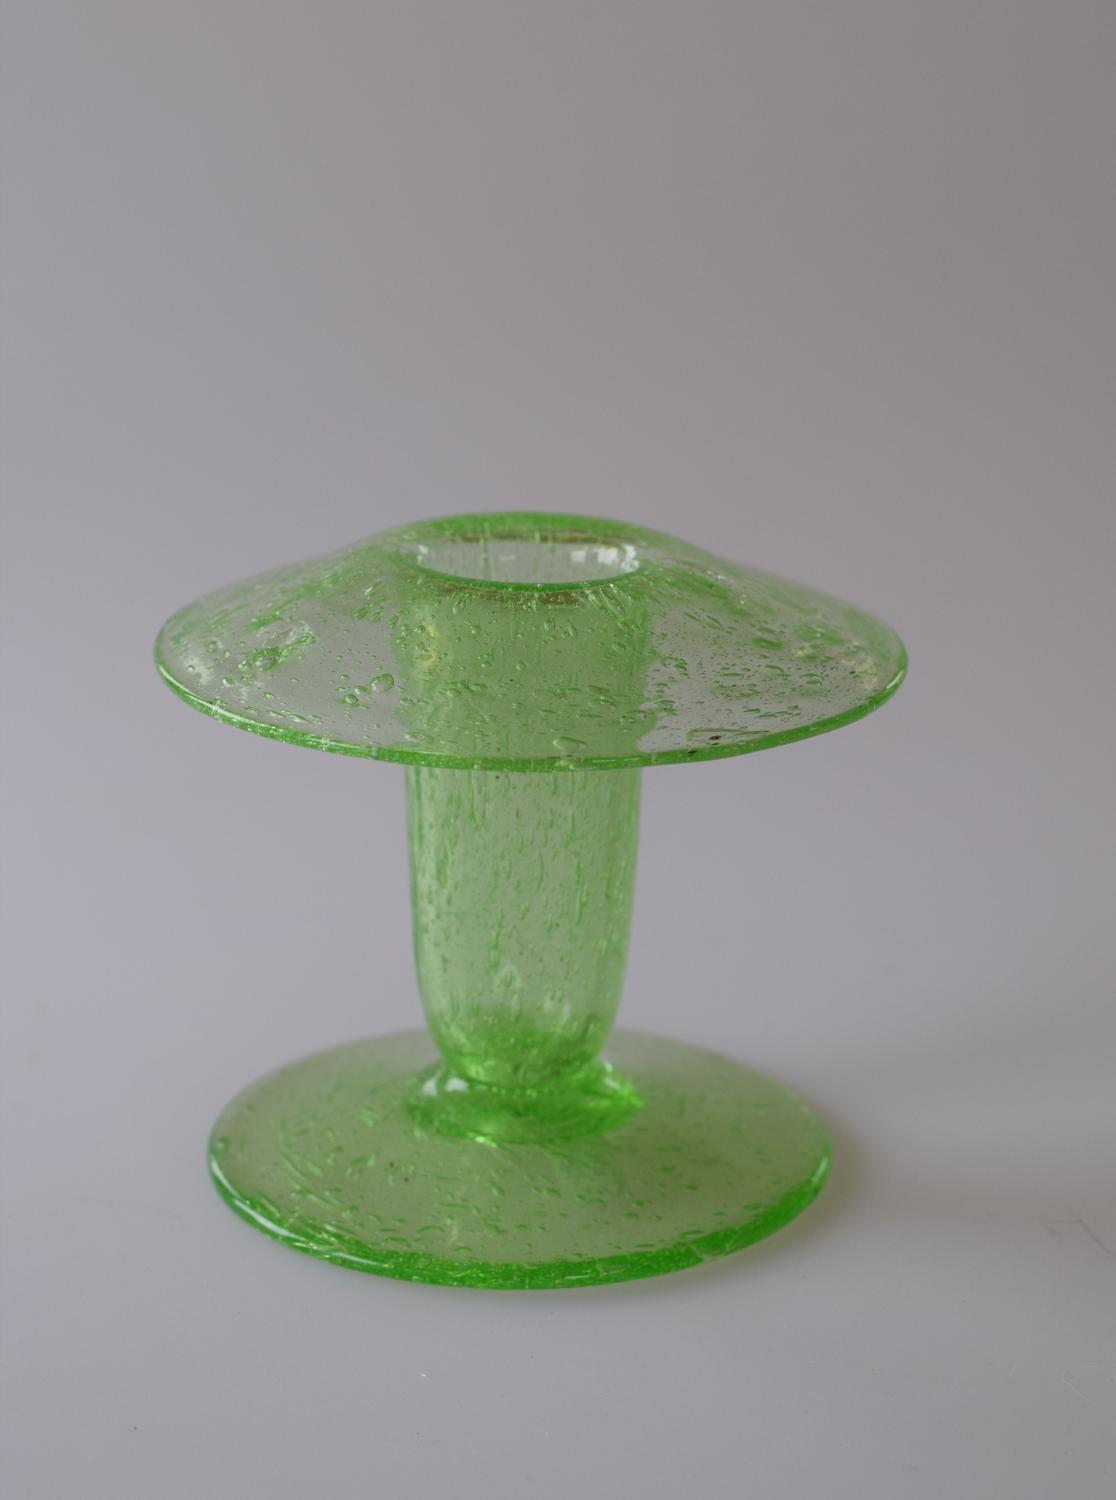 Green Walsh Walsh posy vase, from the Pompeian collection